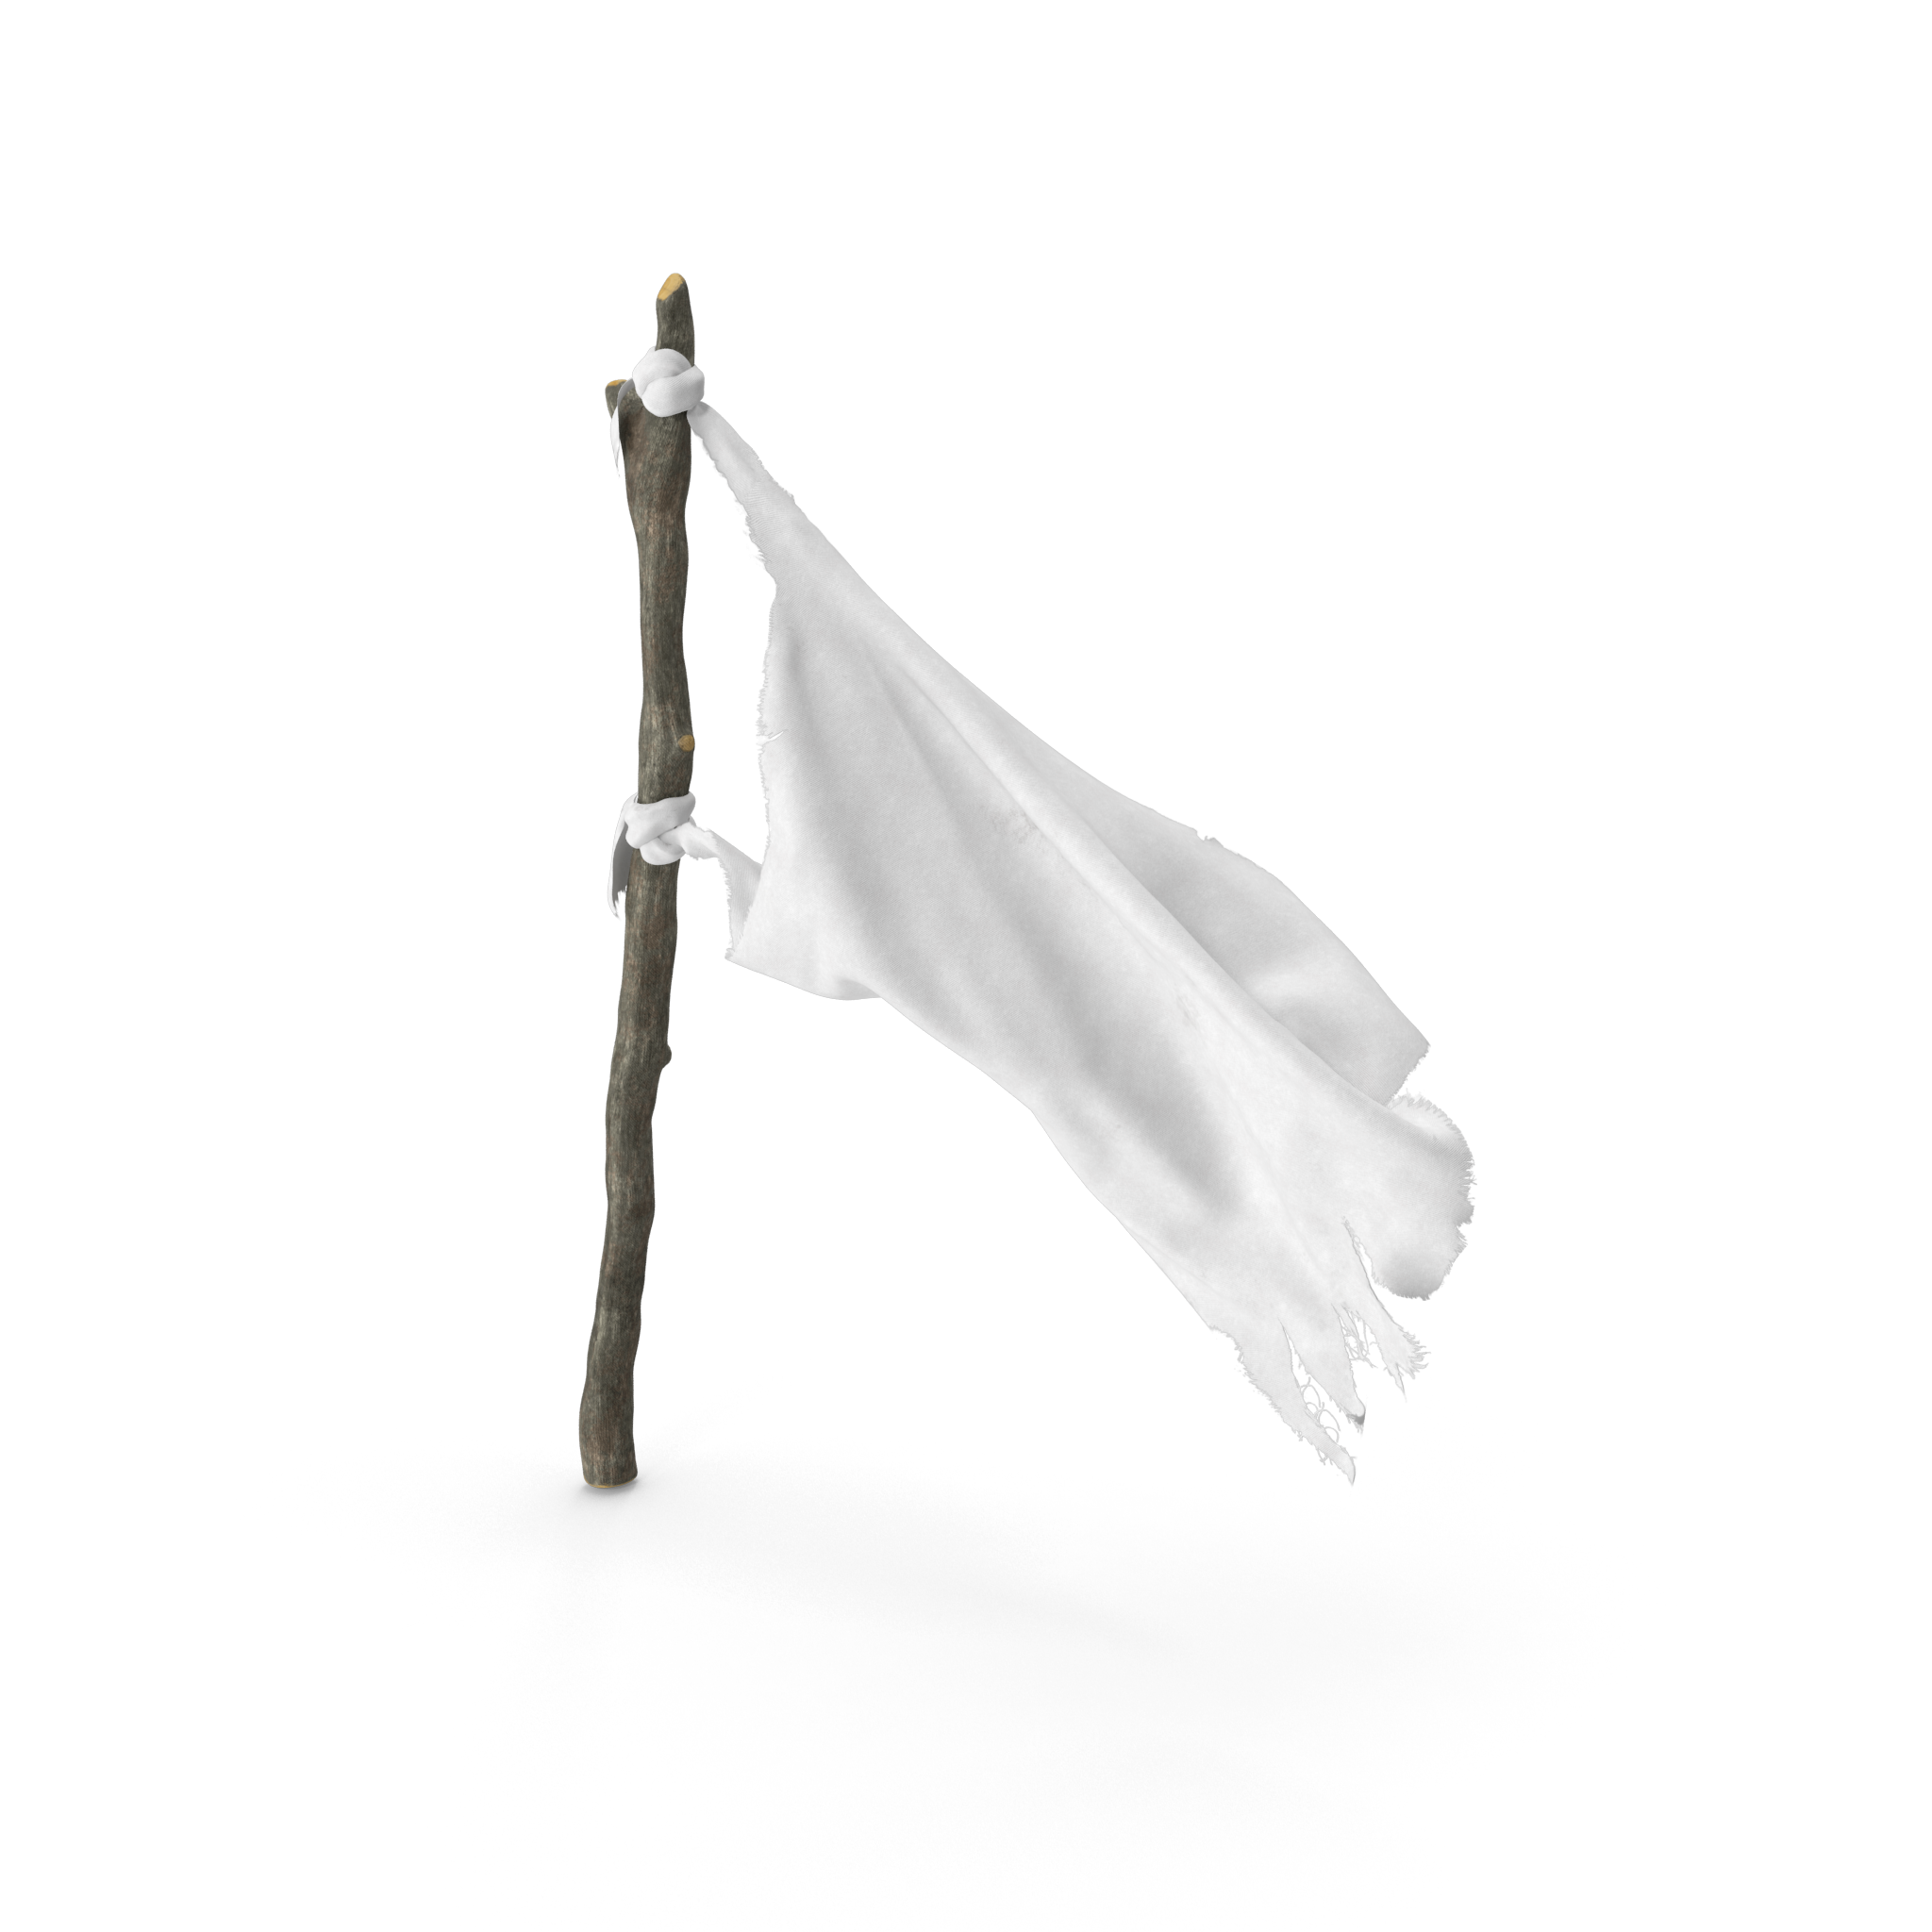 White Surrender Flag.H02.2k.png